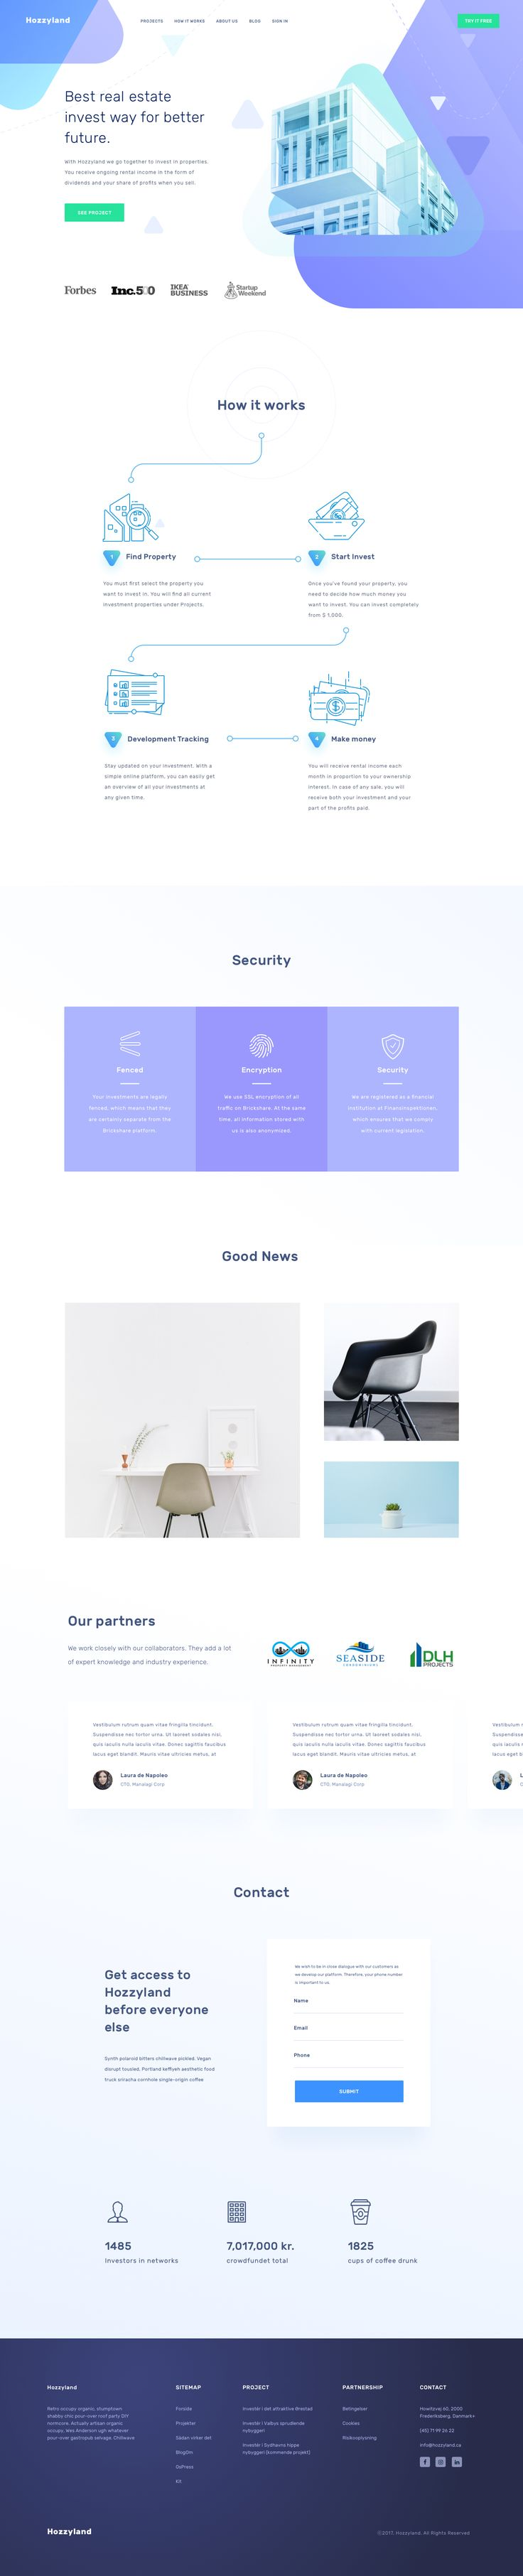 https://dribbble.com/shots/4002737-Hozzyland-Make-Money-with-Your-Home-Invesment/attachments/916305